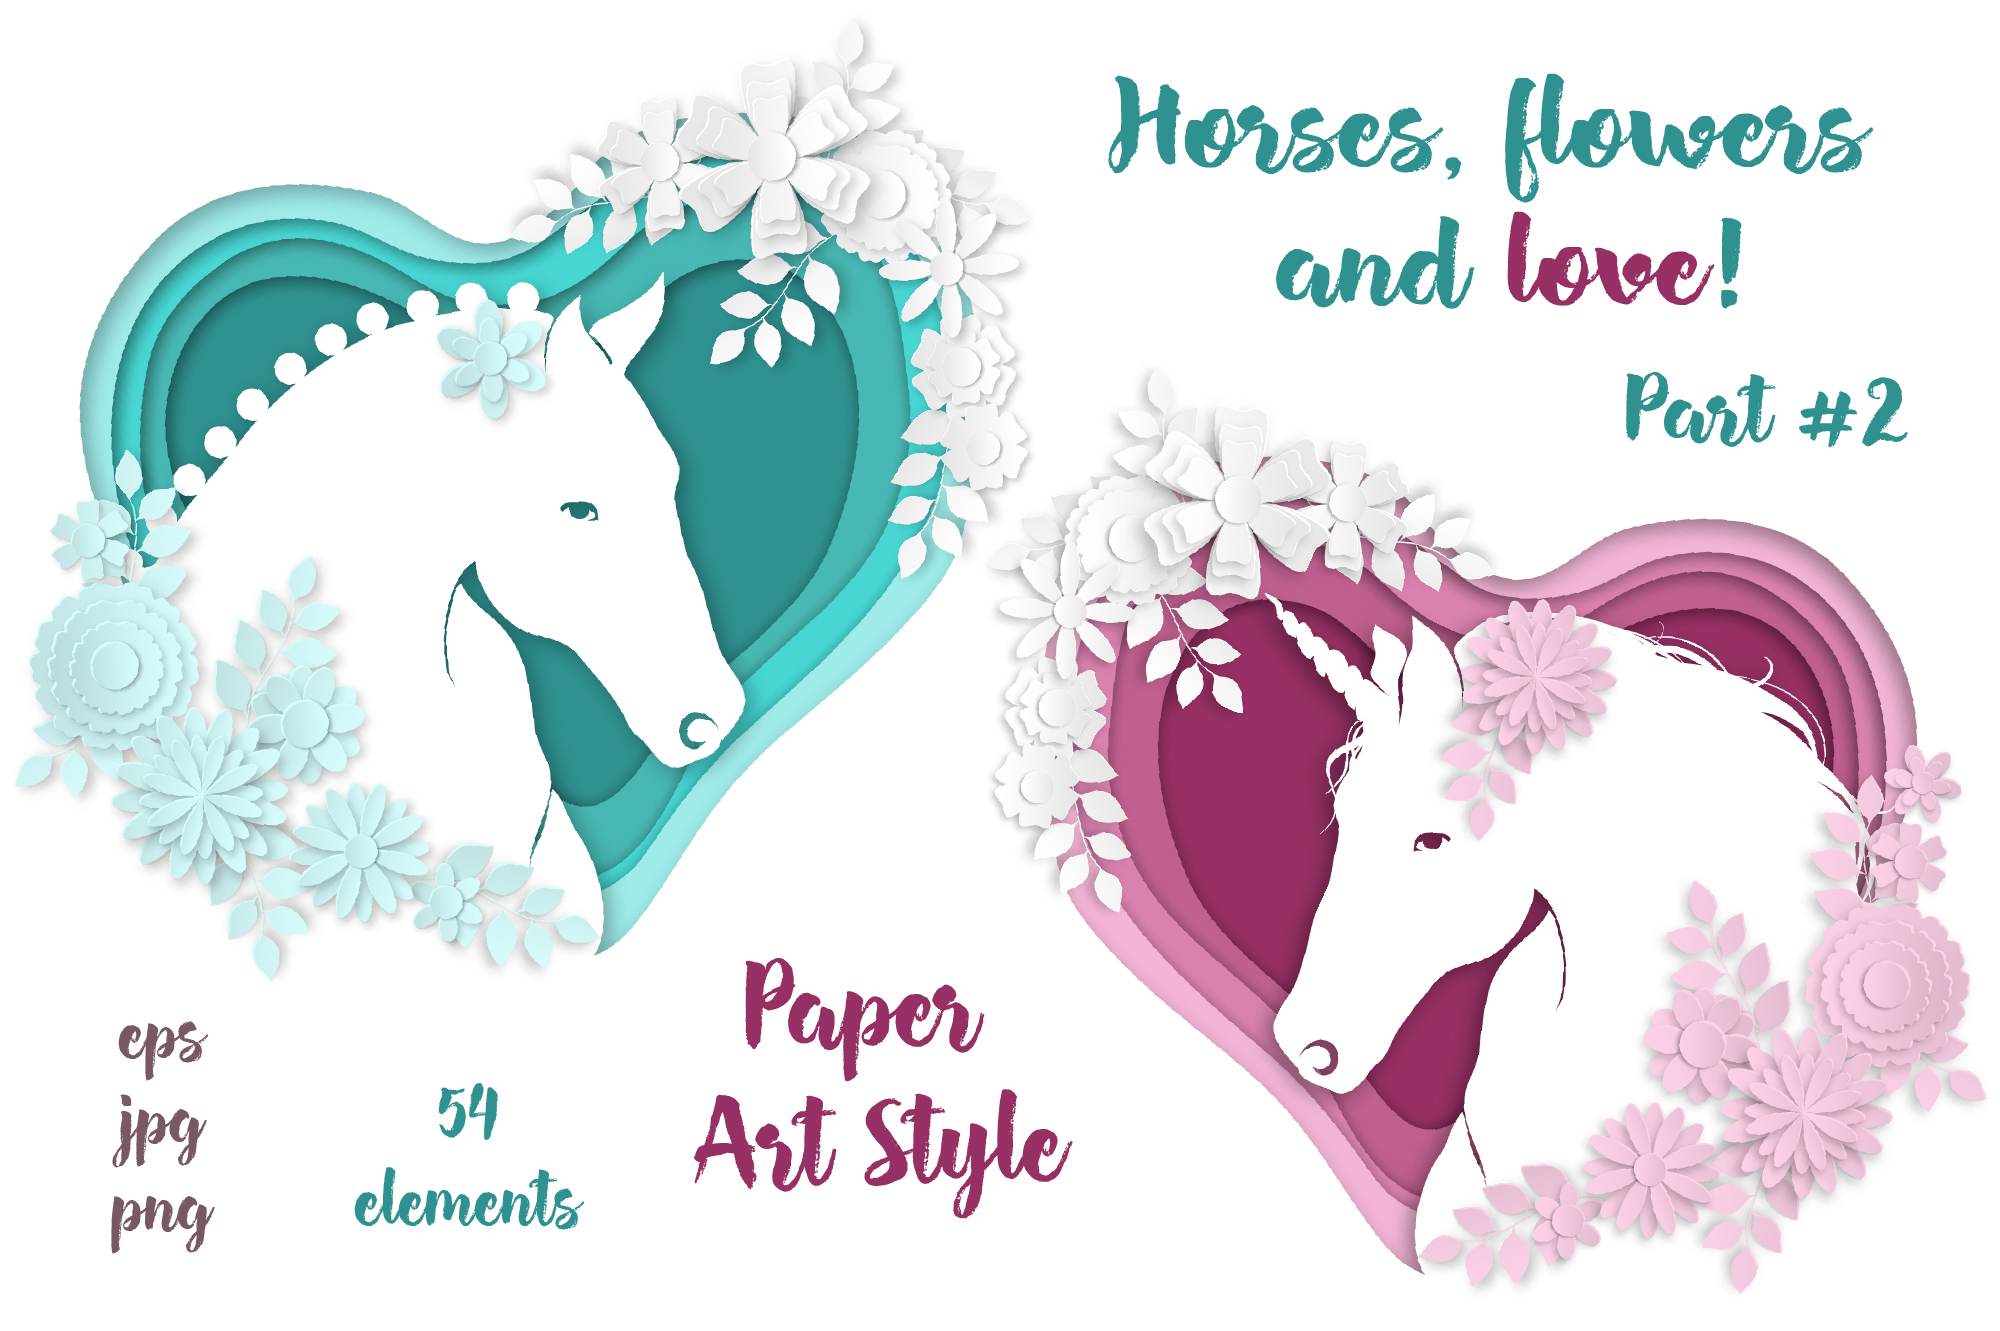 Print on Demand: Horses, Flowers & Love (part #2)– Vector Paper Art Style Graphic Illustrations By nicjulia